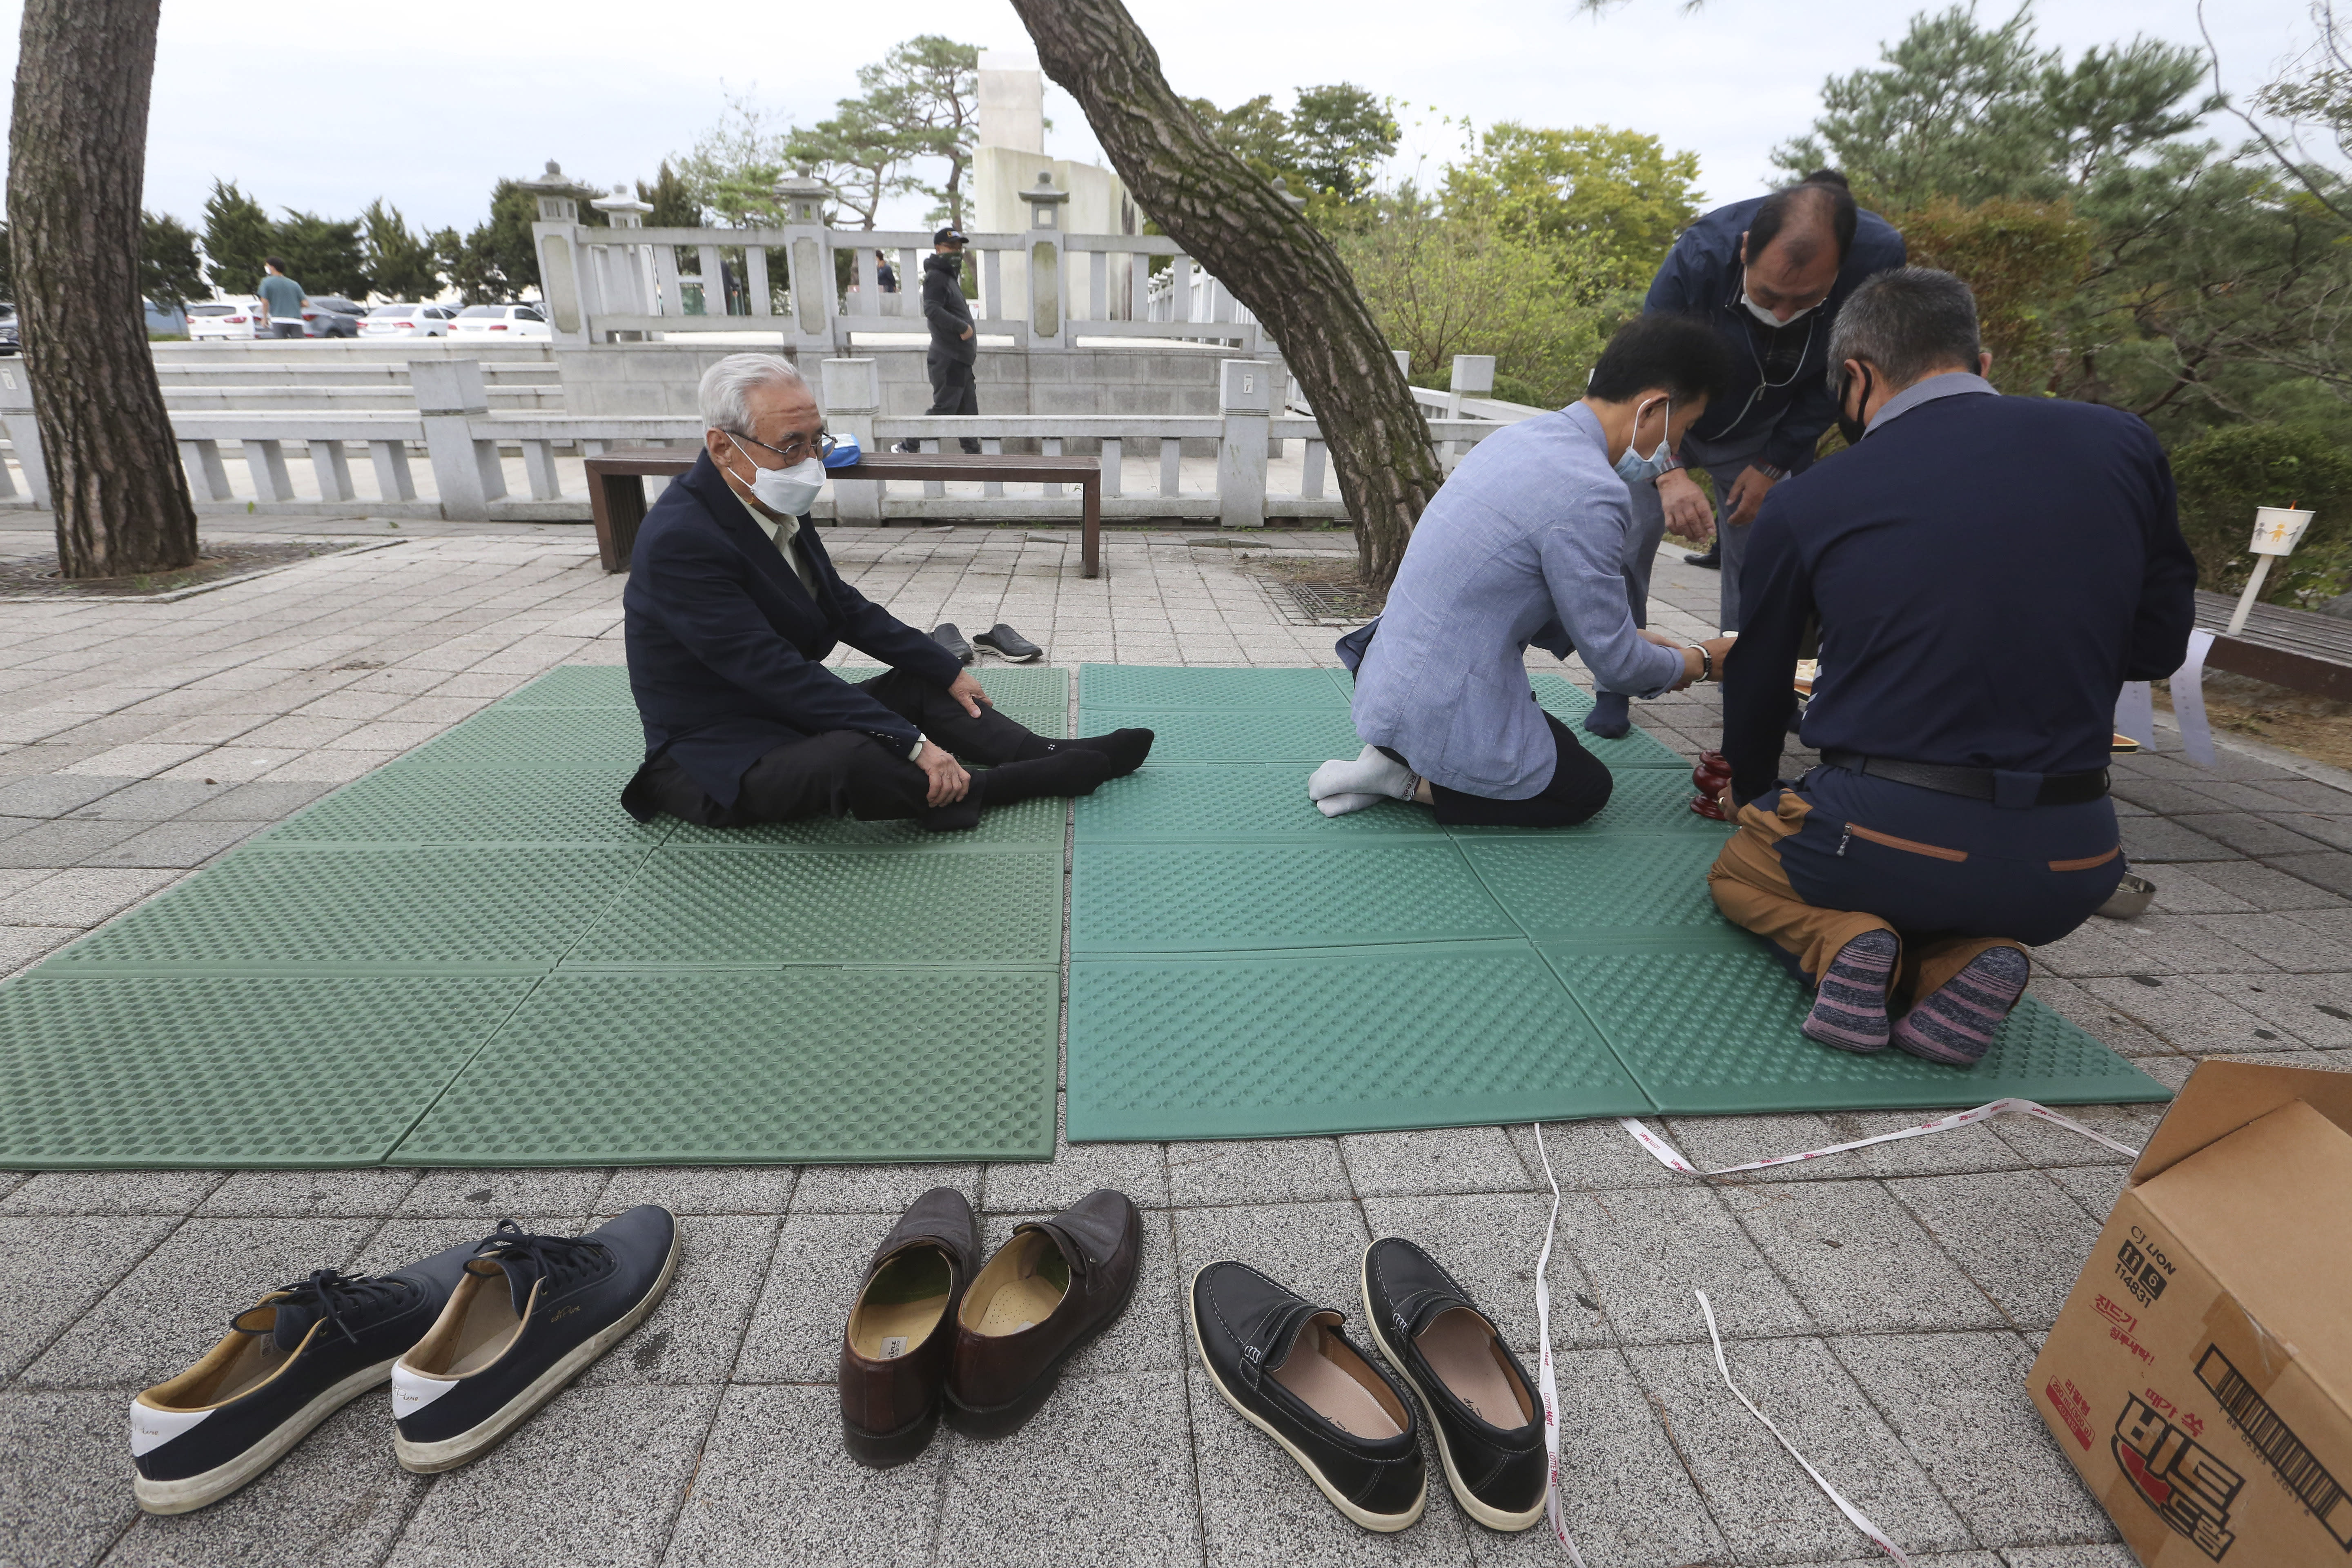 North Korean refugee Jo Kyeong-hyeon, left, and his family members pay respect to their ancestors in North Korea to celebrate the Chuseok, the Korean version of Thanksgiving Day, at Imjingak Pavilion in Paju, near the border with North Korea, South Korea, Thursday, Oct. 1, 2020. The government has discouraged people from visiting their hometowns for the Chuseok holiday amid concerns about the spread of the coronavirus. (AP Photo/Ahn Young-joon)